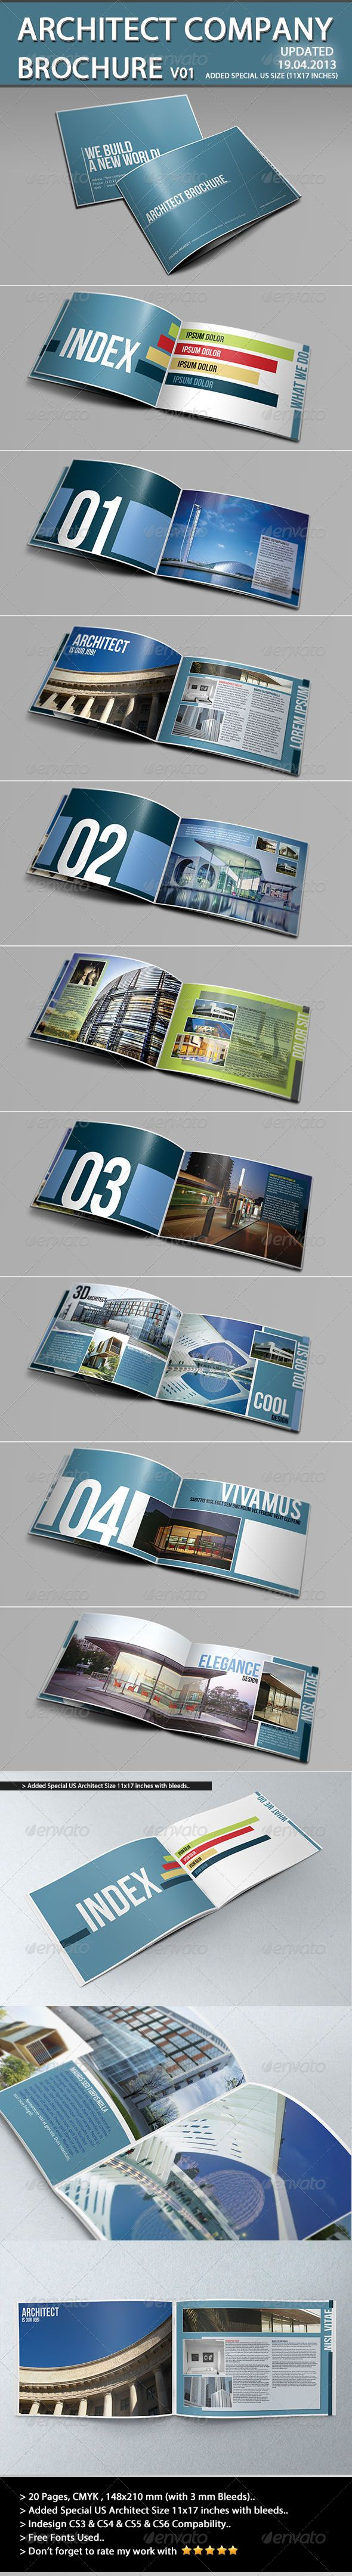 Architecture Brochure Template | Portafolio, Diseño editorial y ...